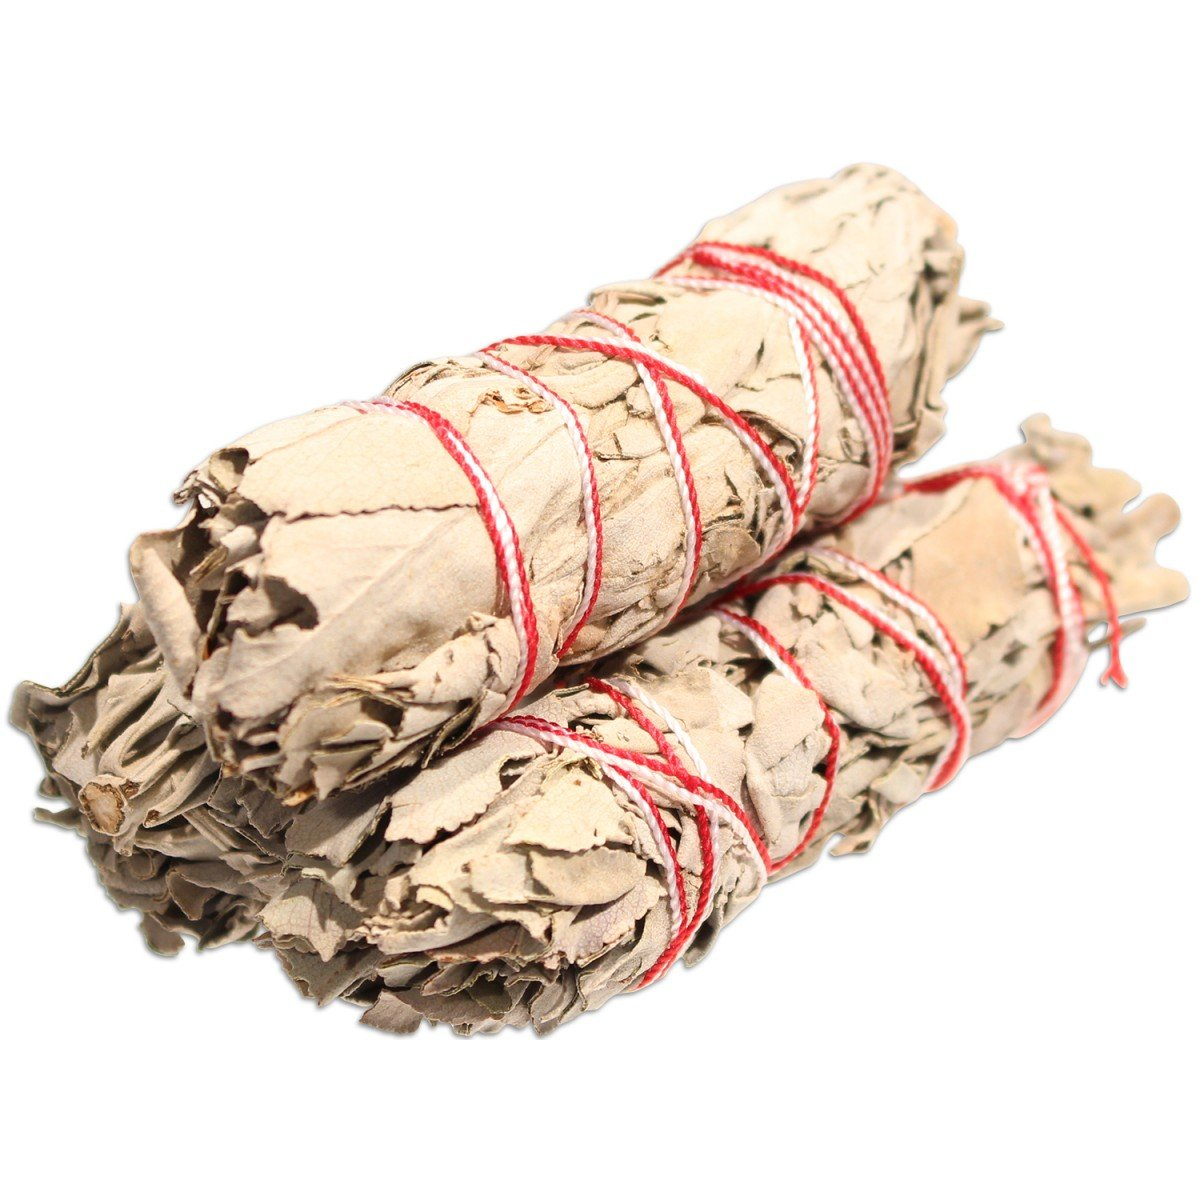 NC Naturals Organic California White Sage Smudge Bundles (Pack of 12) by NC Naturals (Image #1)